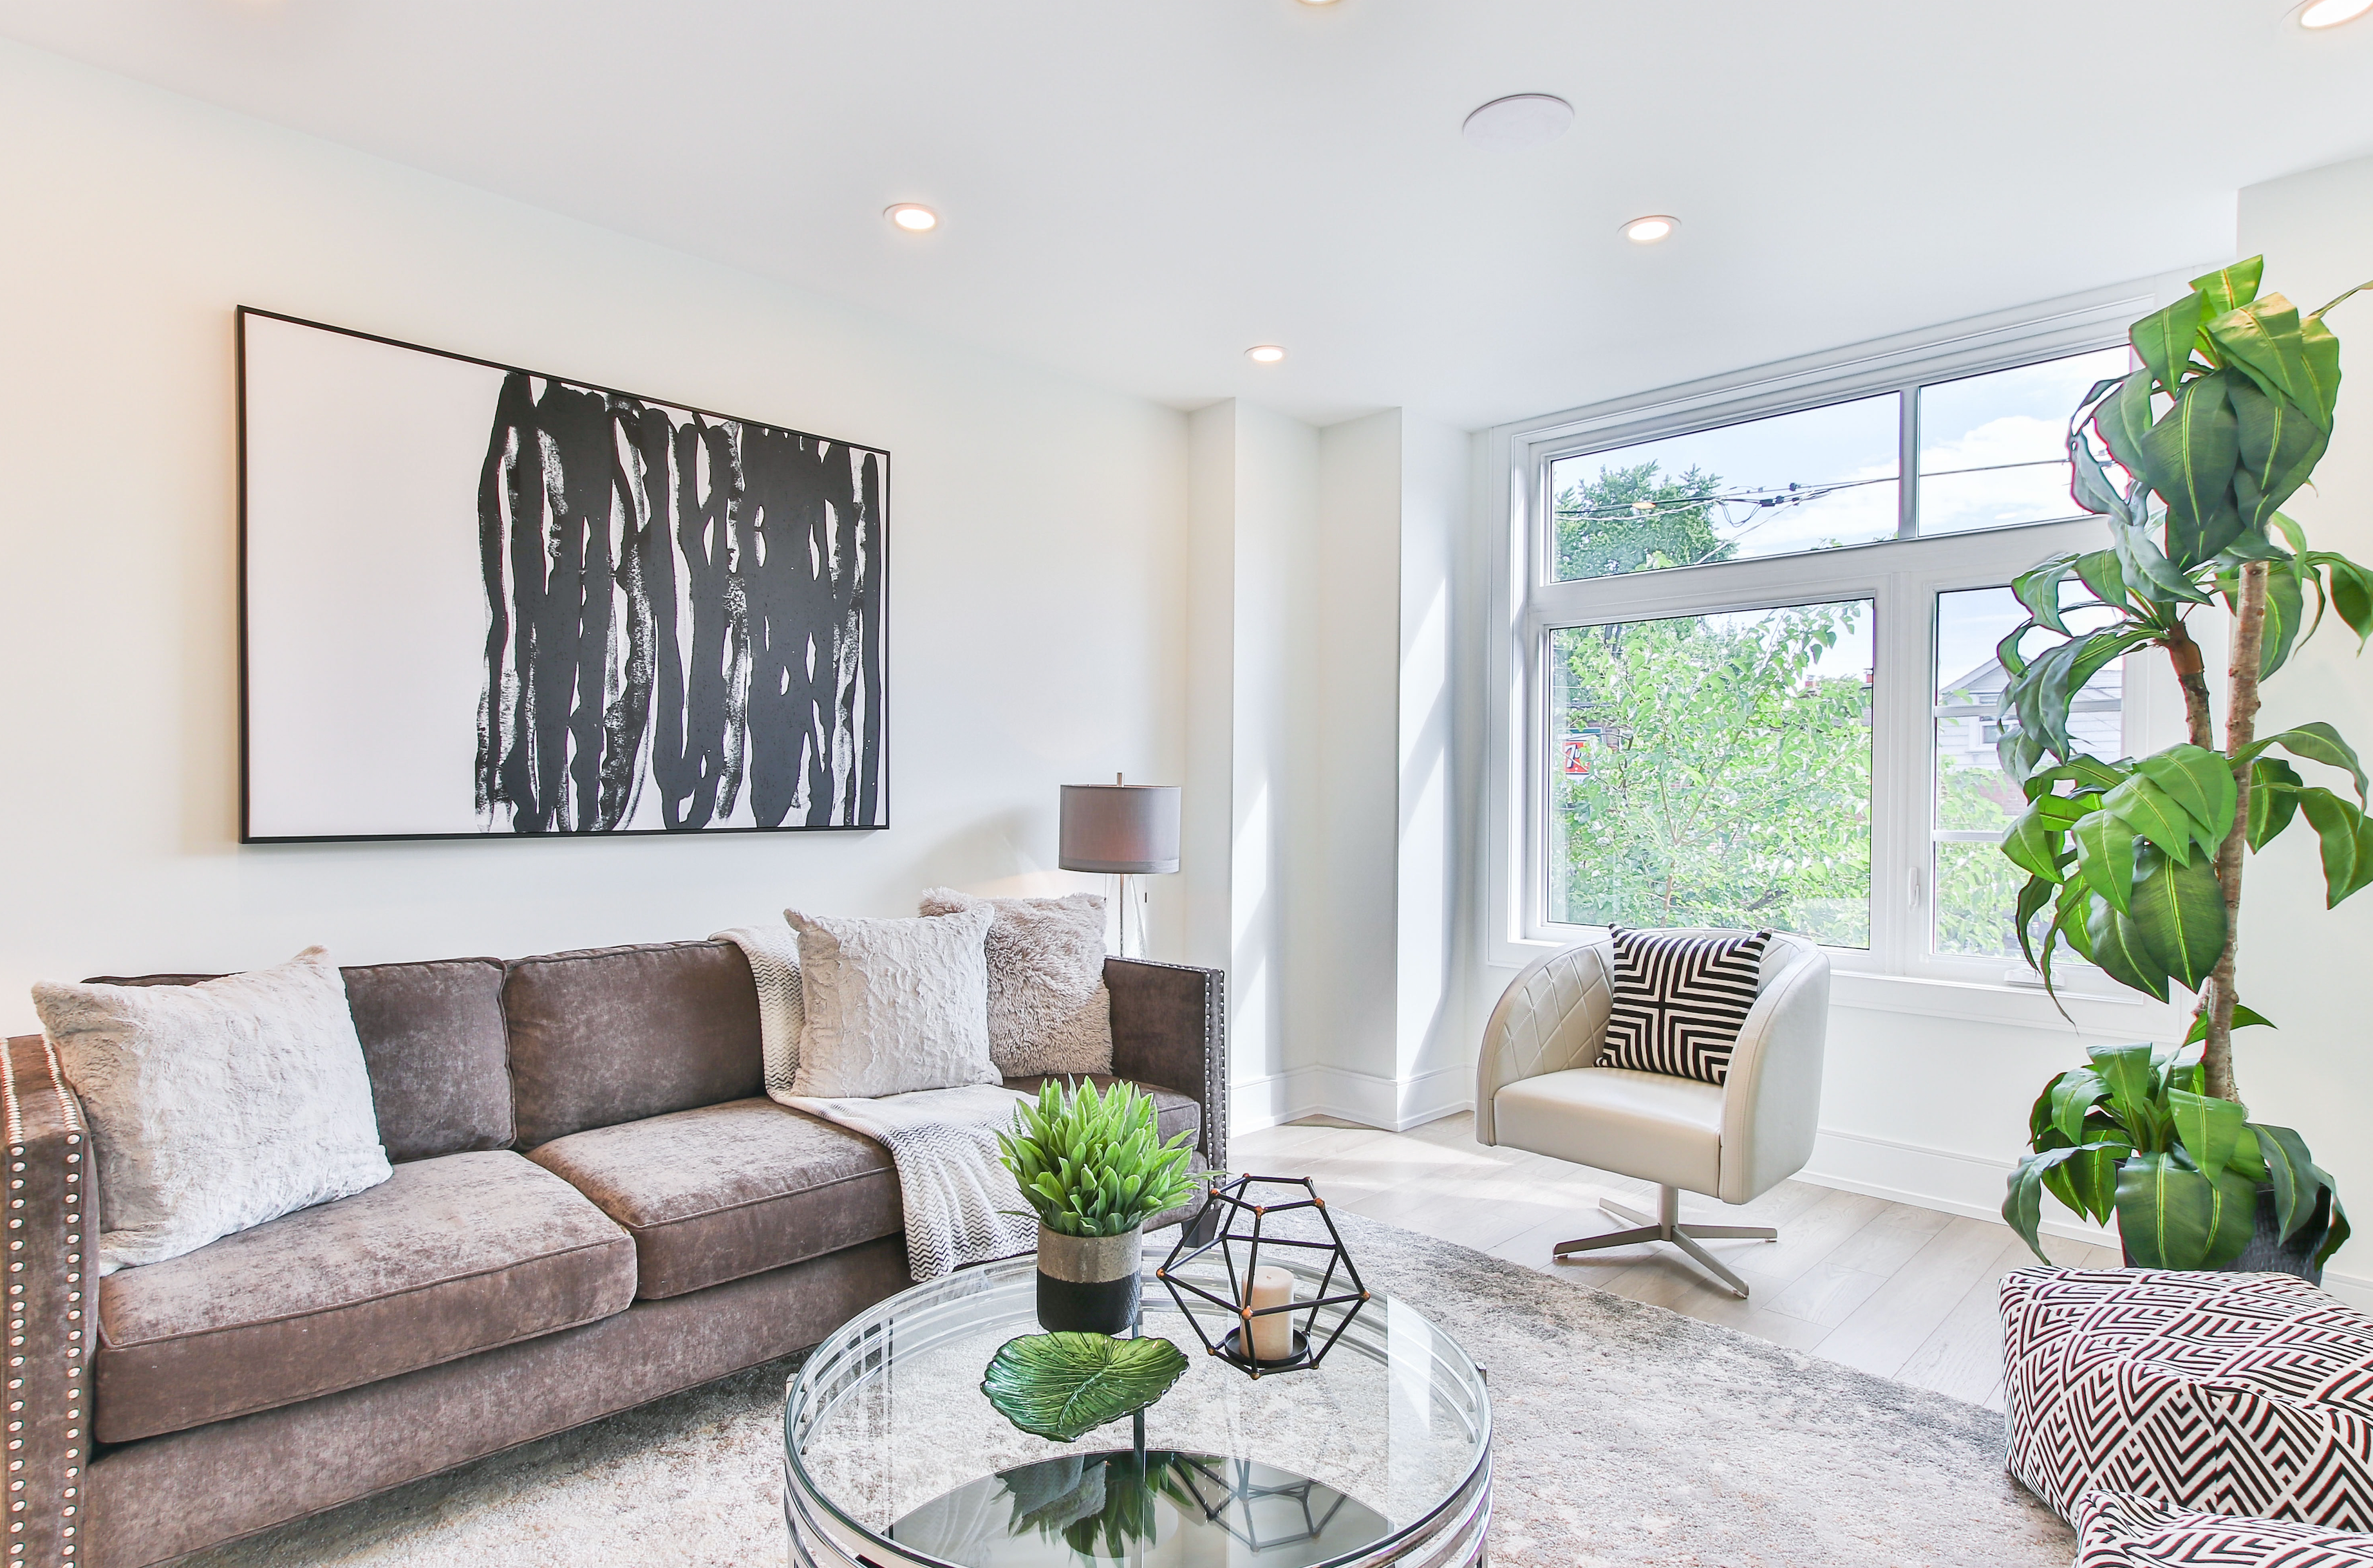 A living room view from the entrance. You can see a 3-seat couch with beautiful black and white artwork above it, a white accent chair in front of a huge window to the outdoors, a lovely plant in the forefront, and a glass coffee table to allow for light to bounce around the room unobstructed